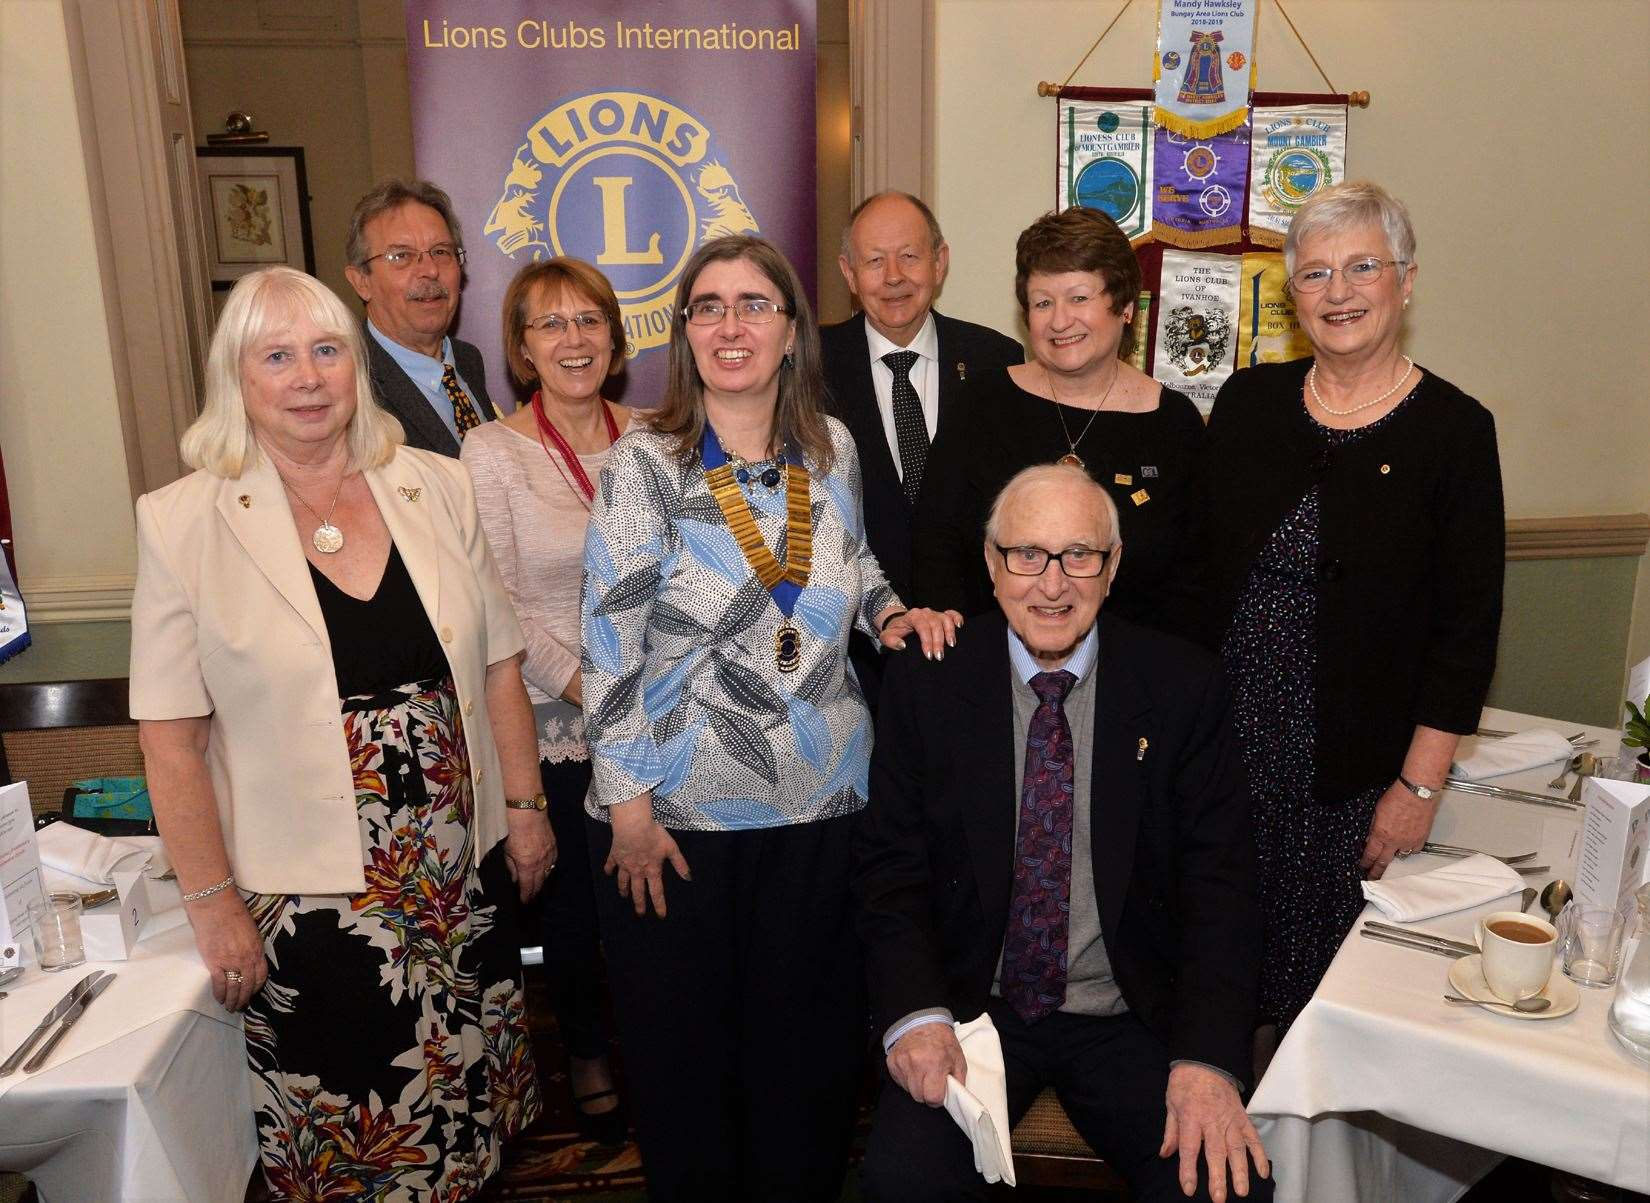 Members of Newmarket Lions Club celebrate the award of the group's charter 43 years ago